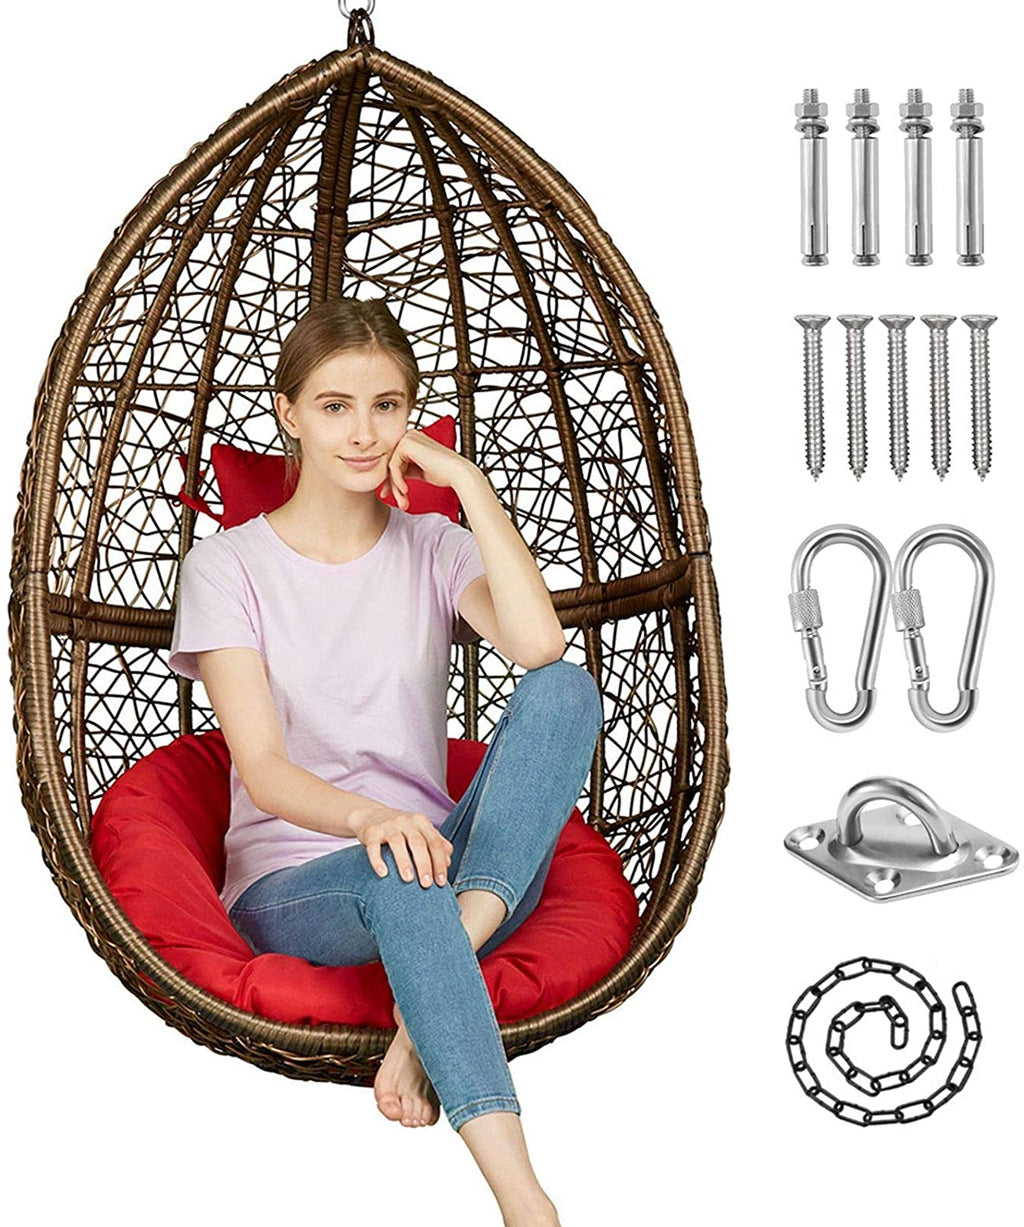 Greenstell Hammock Swing Stand+Egg Hammock Chair Brown+Red Cushion Pillow